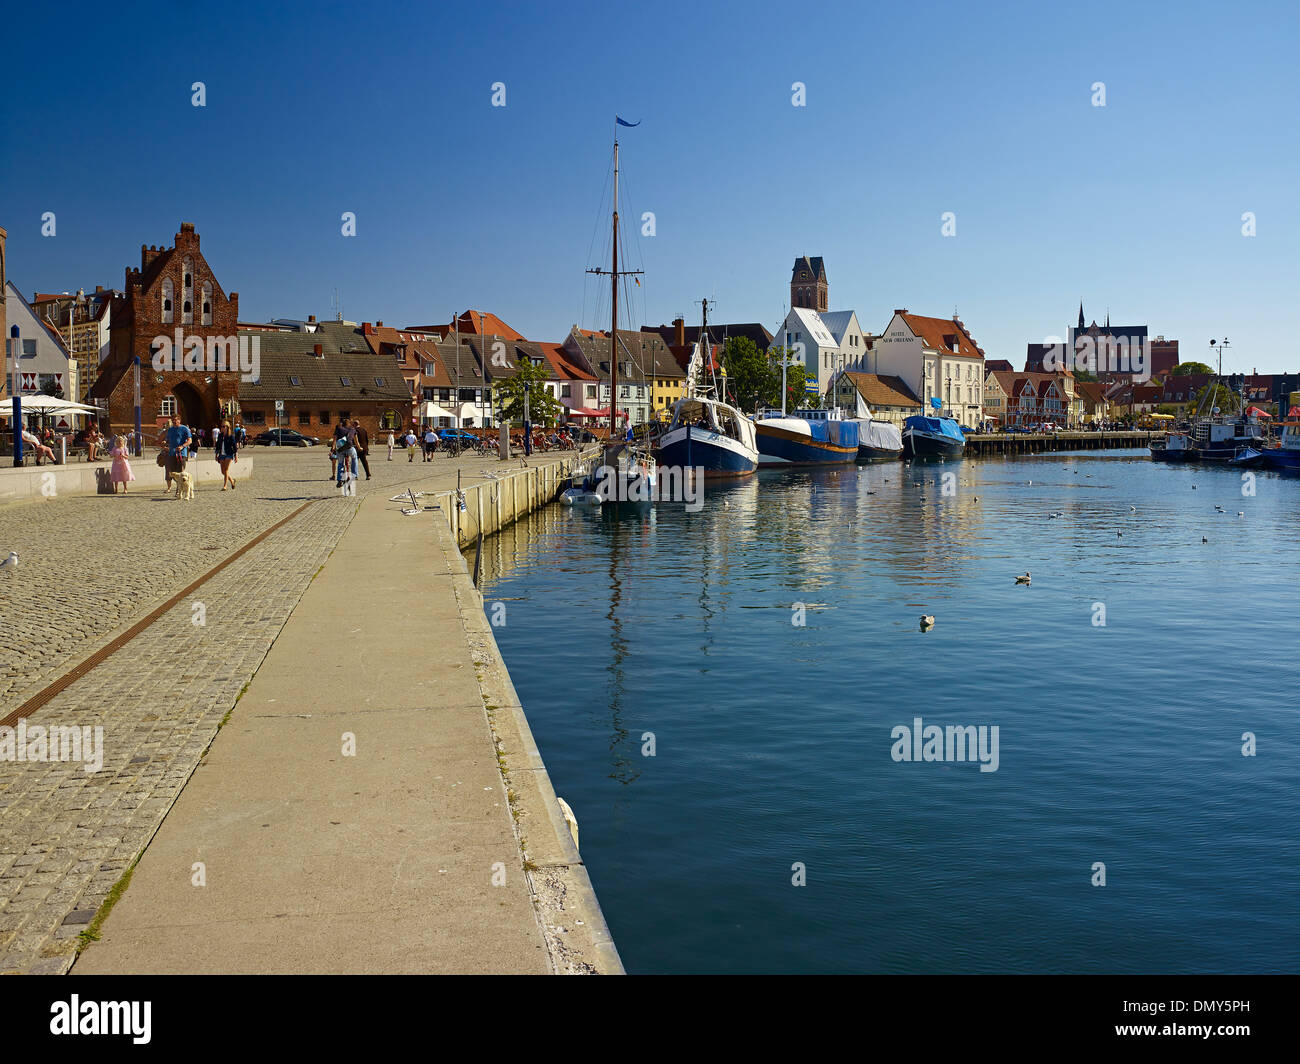 Harbour with St George Church, Wismar, Mecklenburg-Vorpommern, Germany - Stock Image